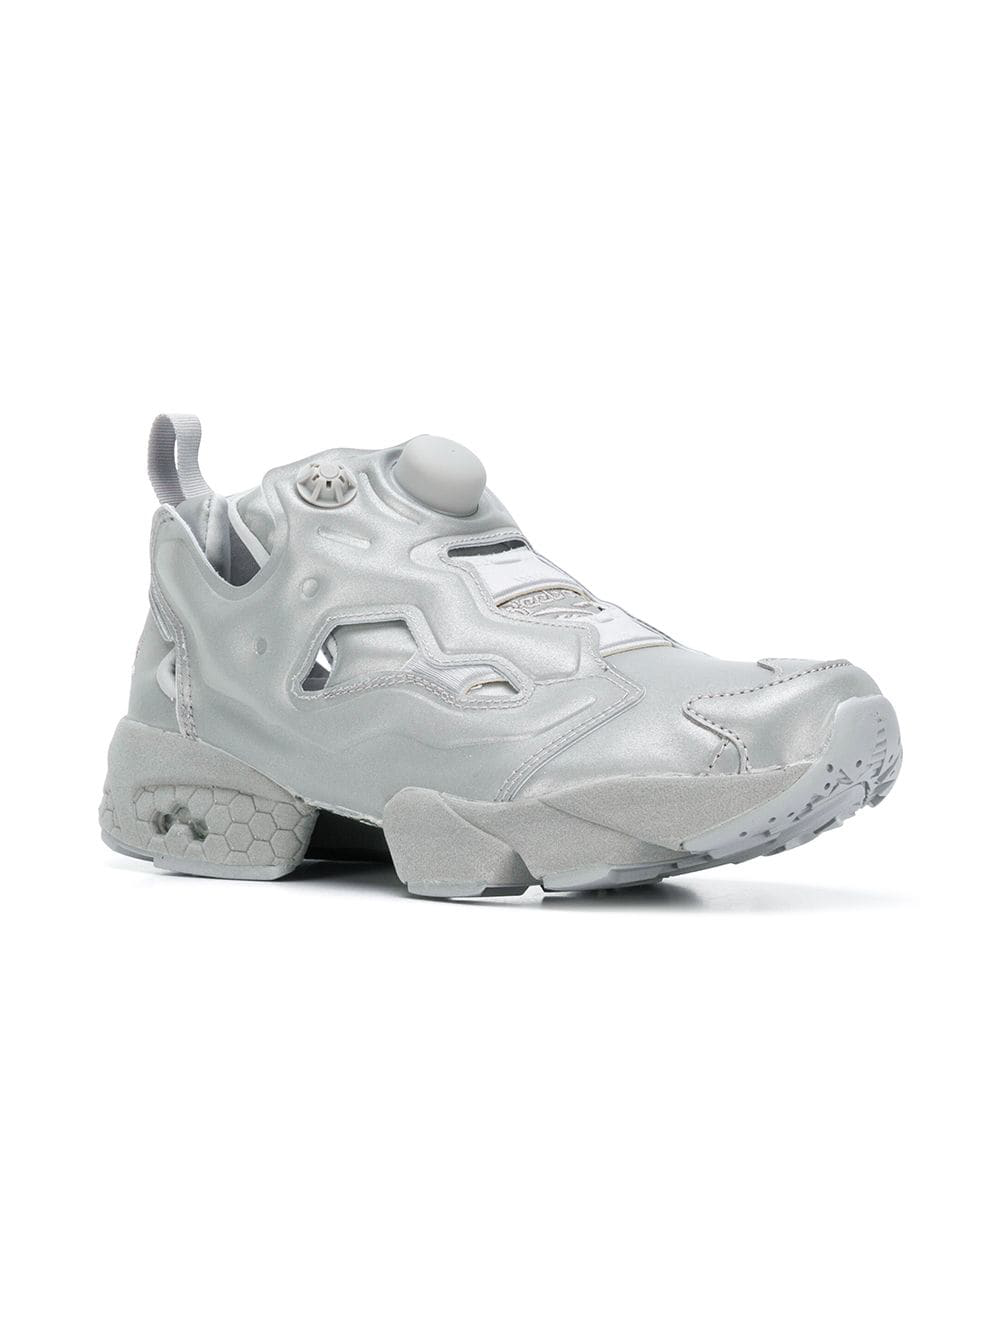 70840f7bf76 Vetements Grey Reebok Edition Reflective Instapump Fury Sneakers In Silver